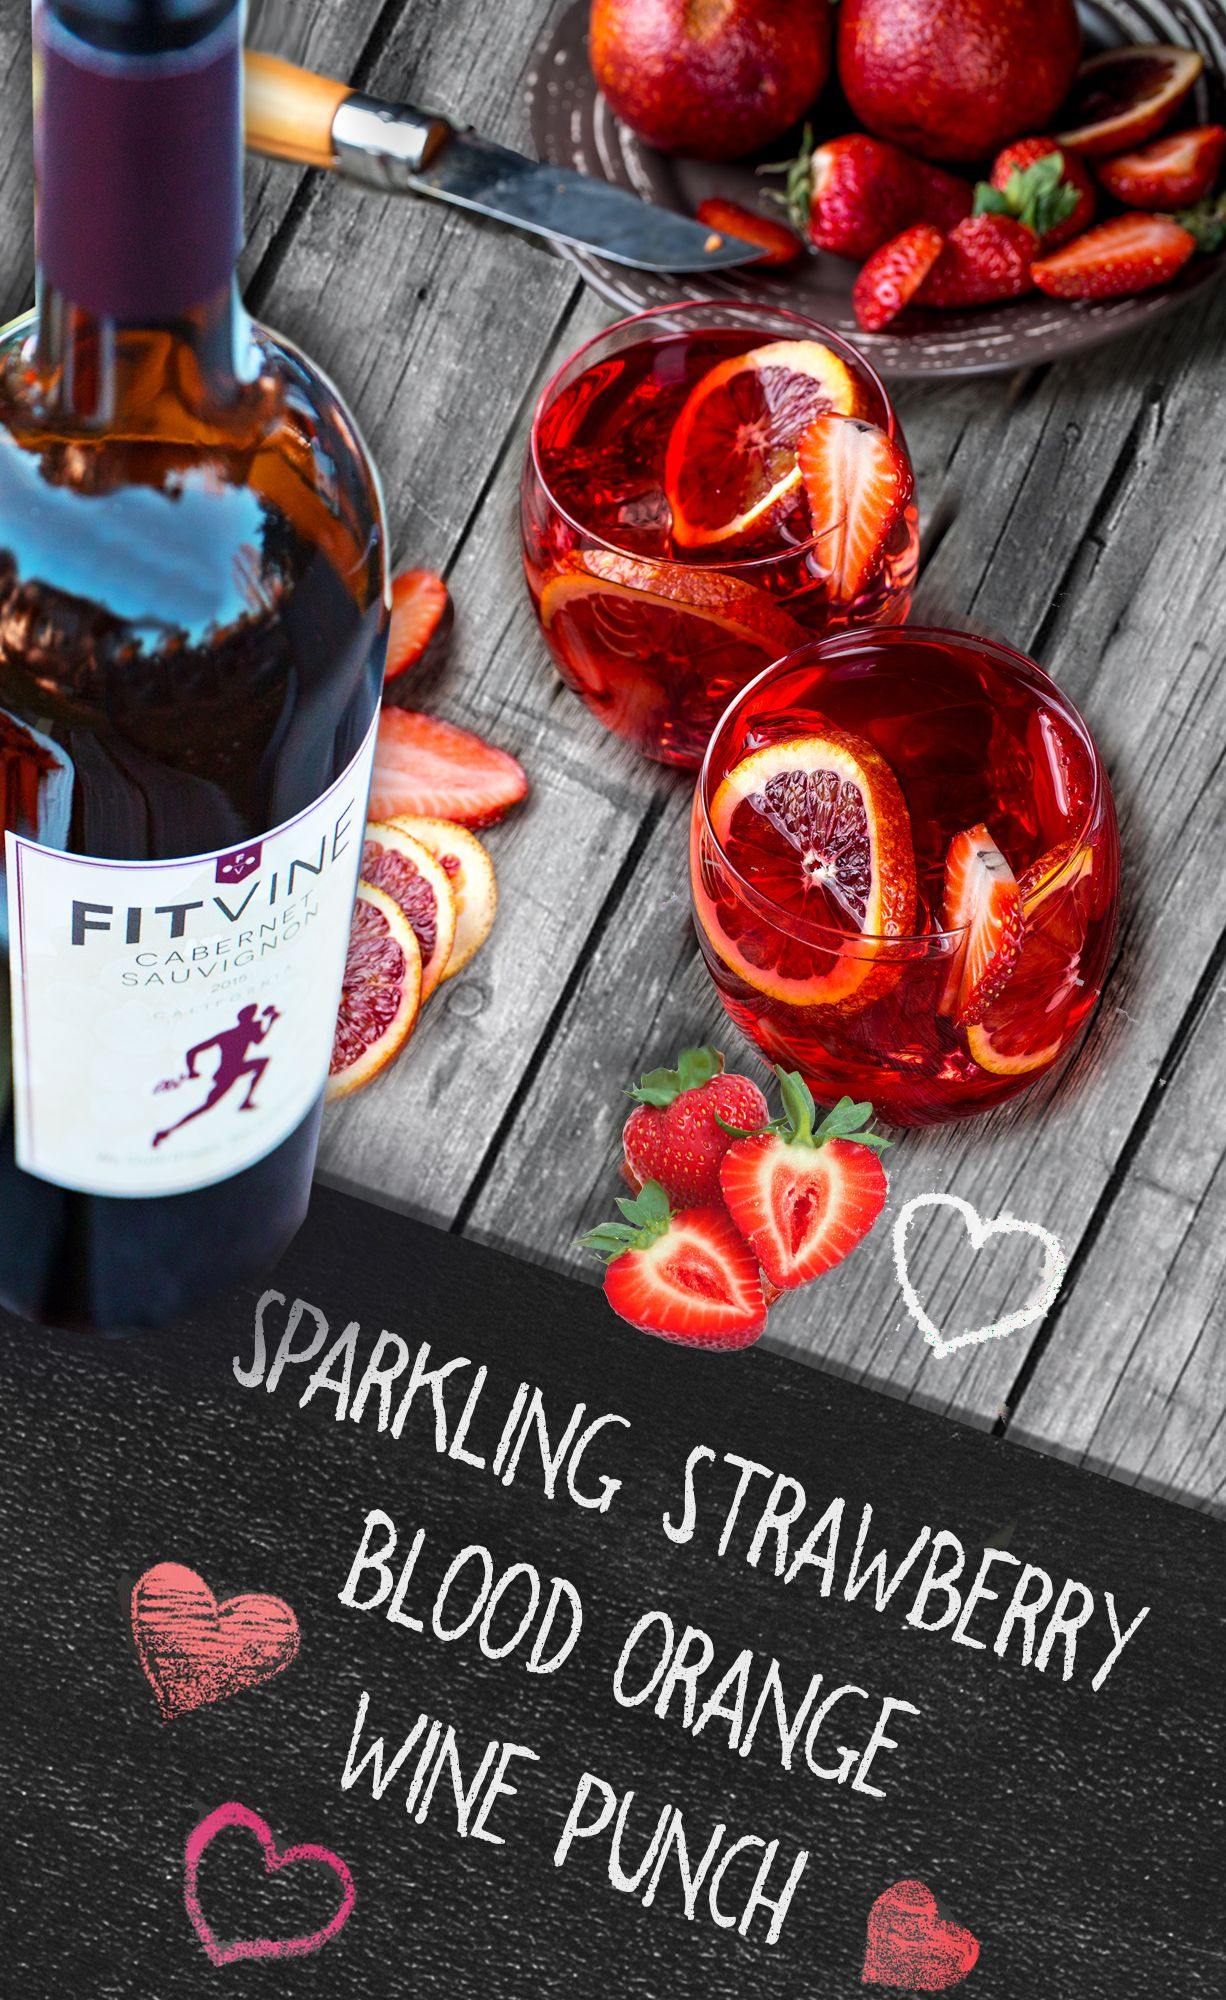 Pin On Celebrate With Fitvine Wine